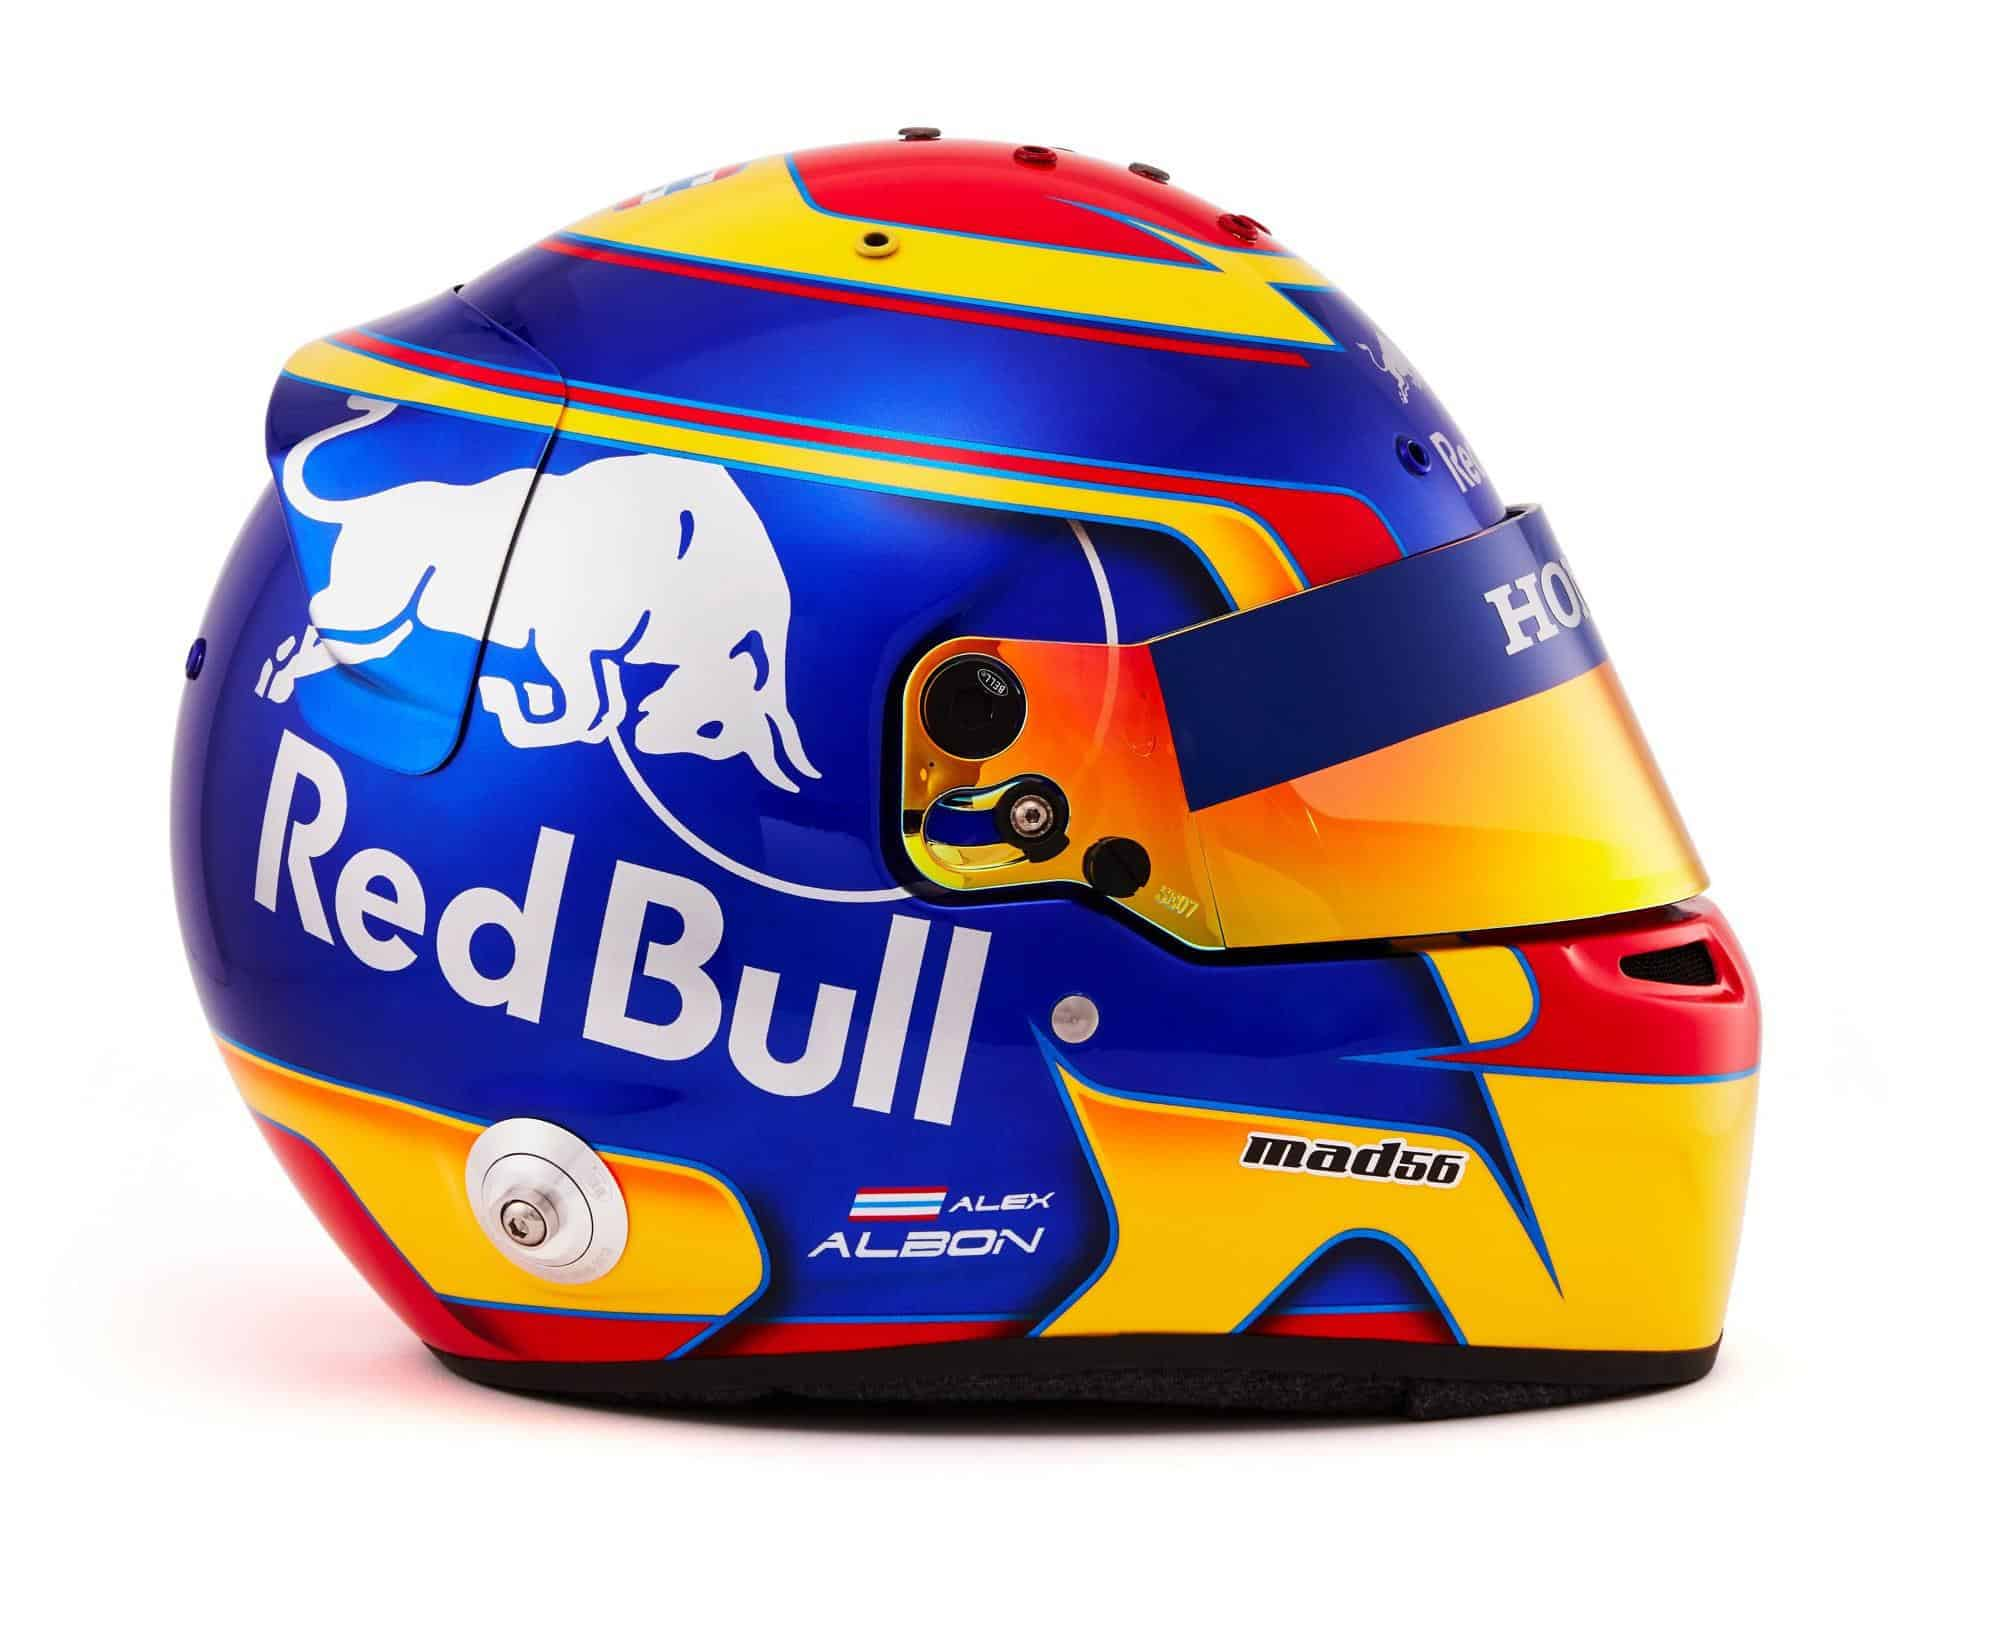 2019 F1 Alexander Albon helmet Toro Rosso Honda right side Photo Red Bull Edited by MAXF1net